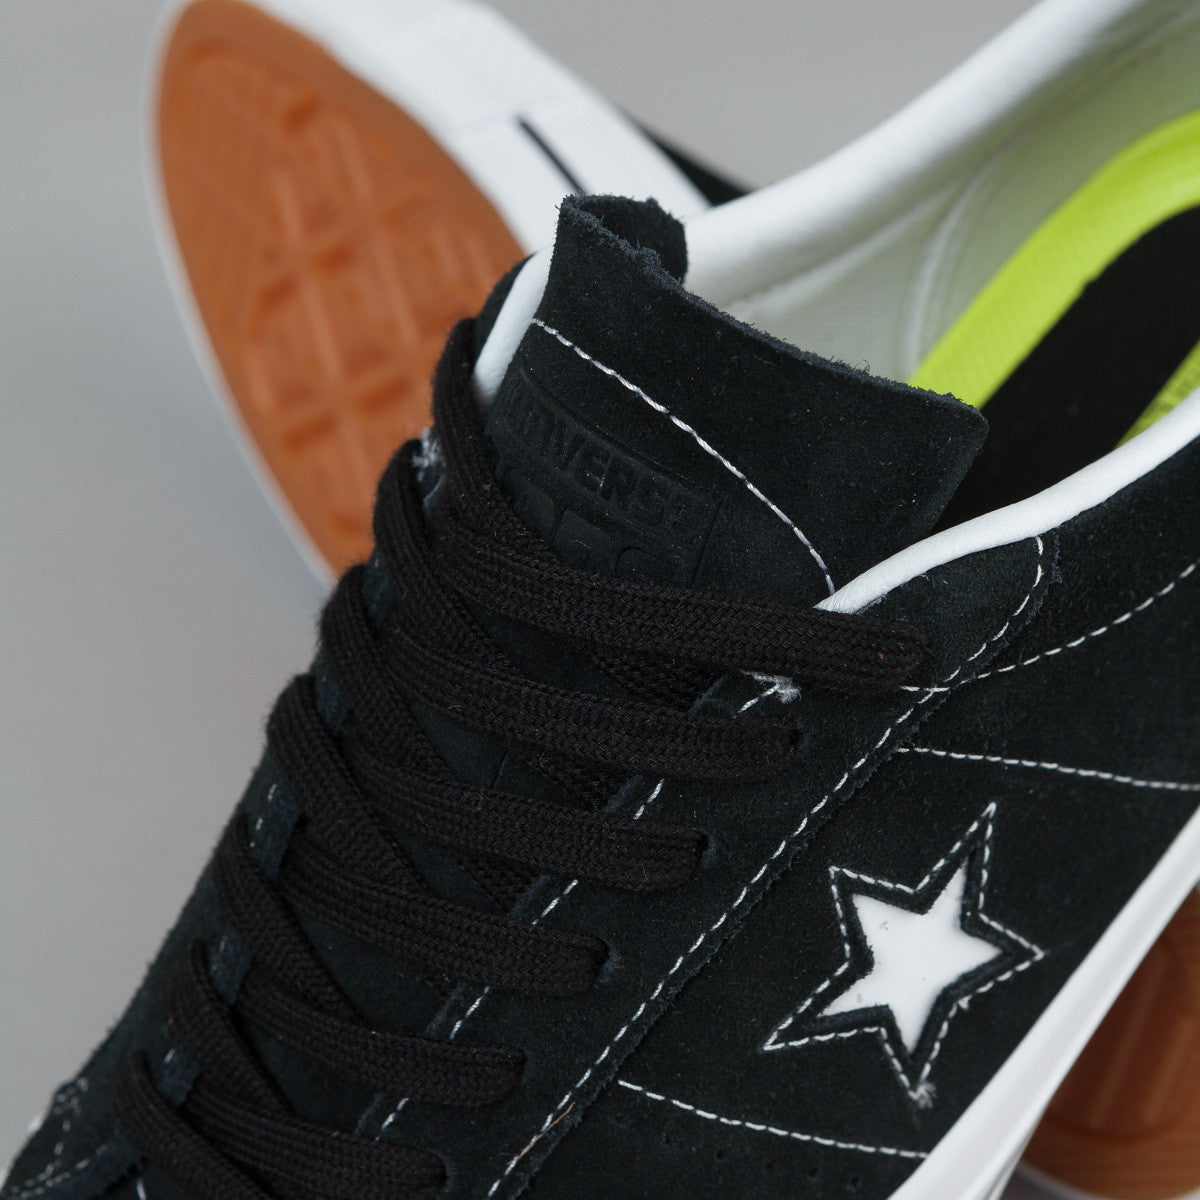 Converse One Star Pro Shoes - Black / White